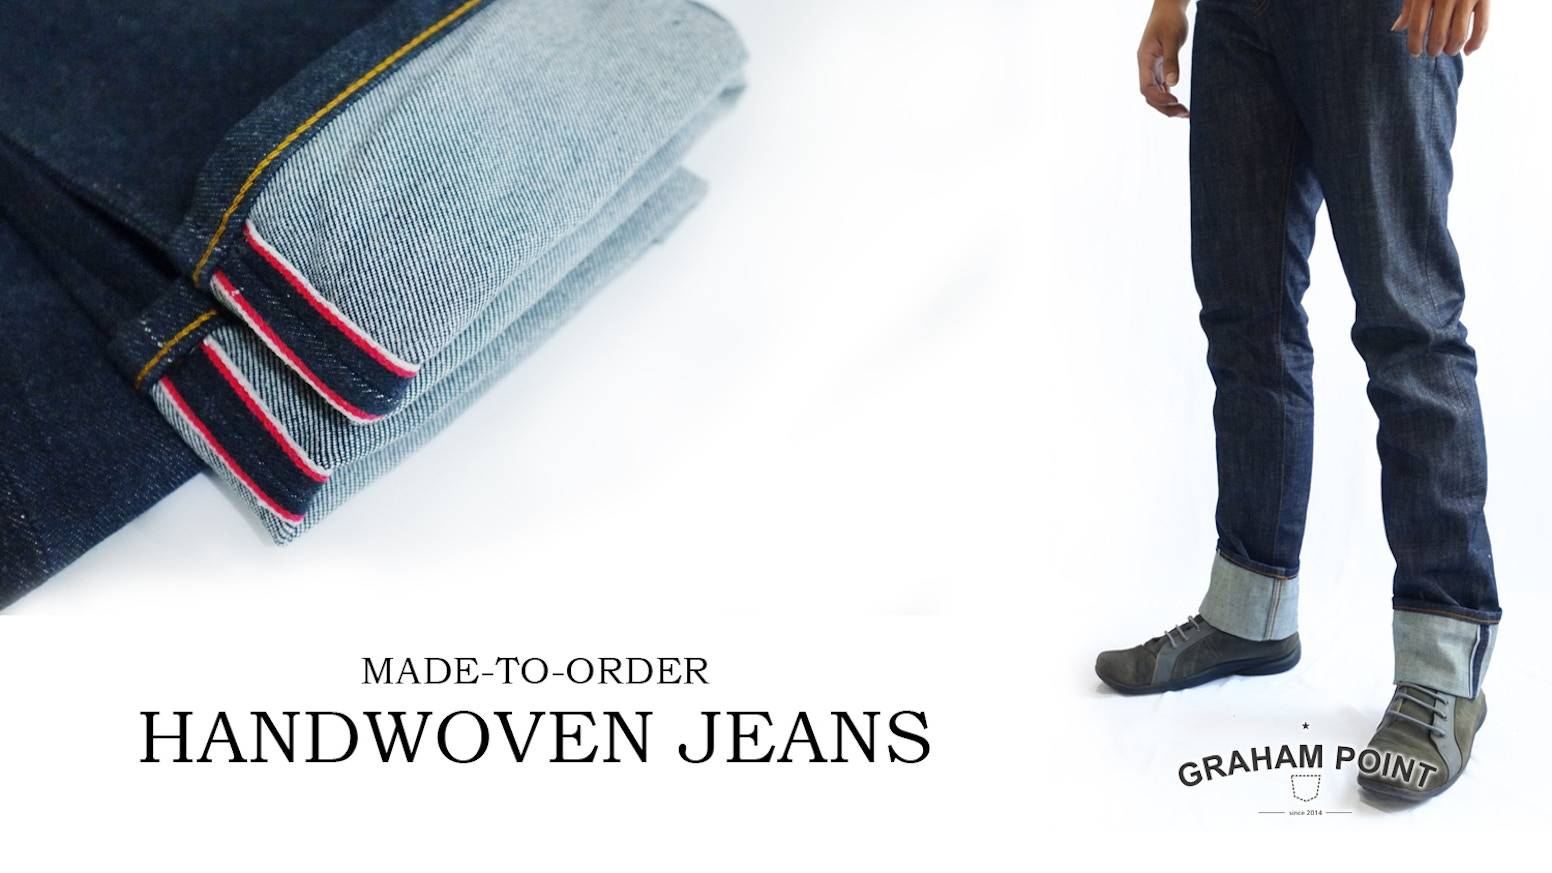 Campaign has ended. You can still join previous Backers through the link below. [Handwoven, Selvedge, Premium, Customize, Fit To Your Body, Personalize, Batik, Free Shipping, Social Responsibility, Great Price!]